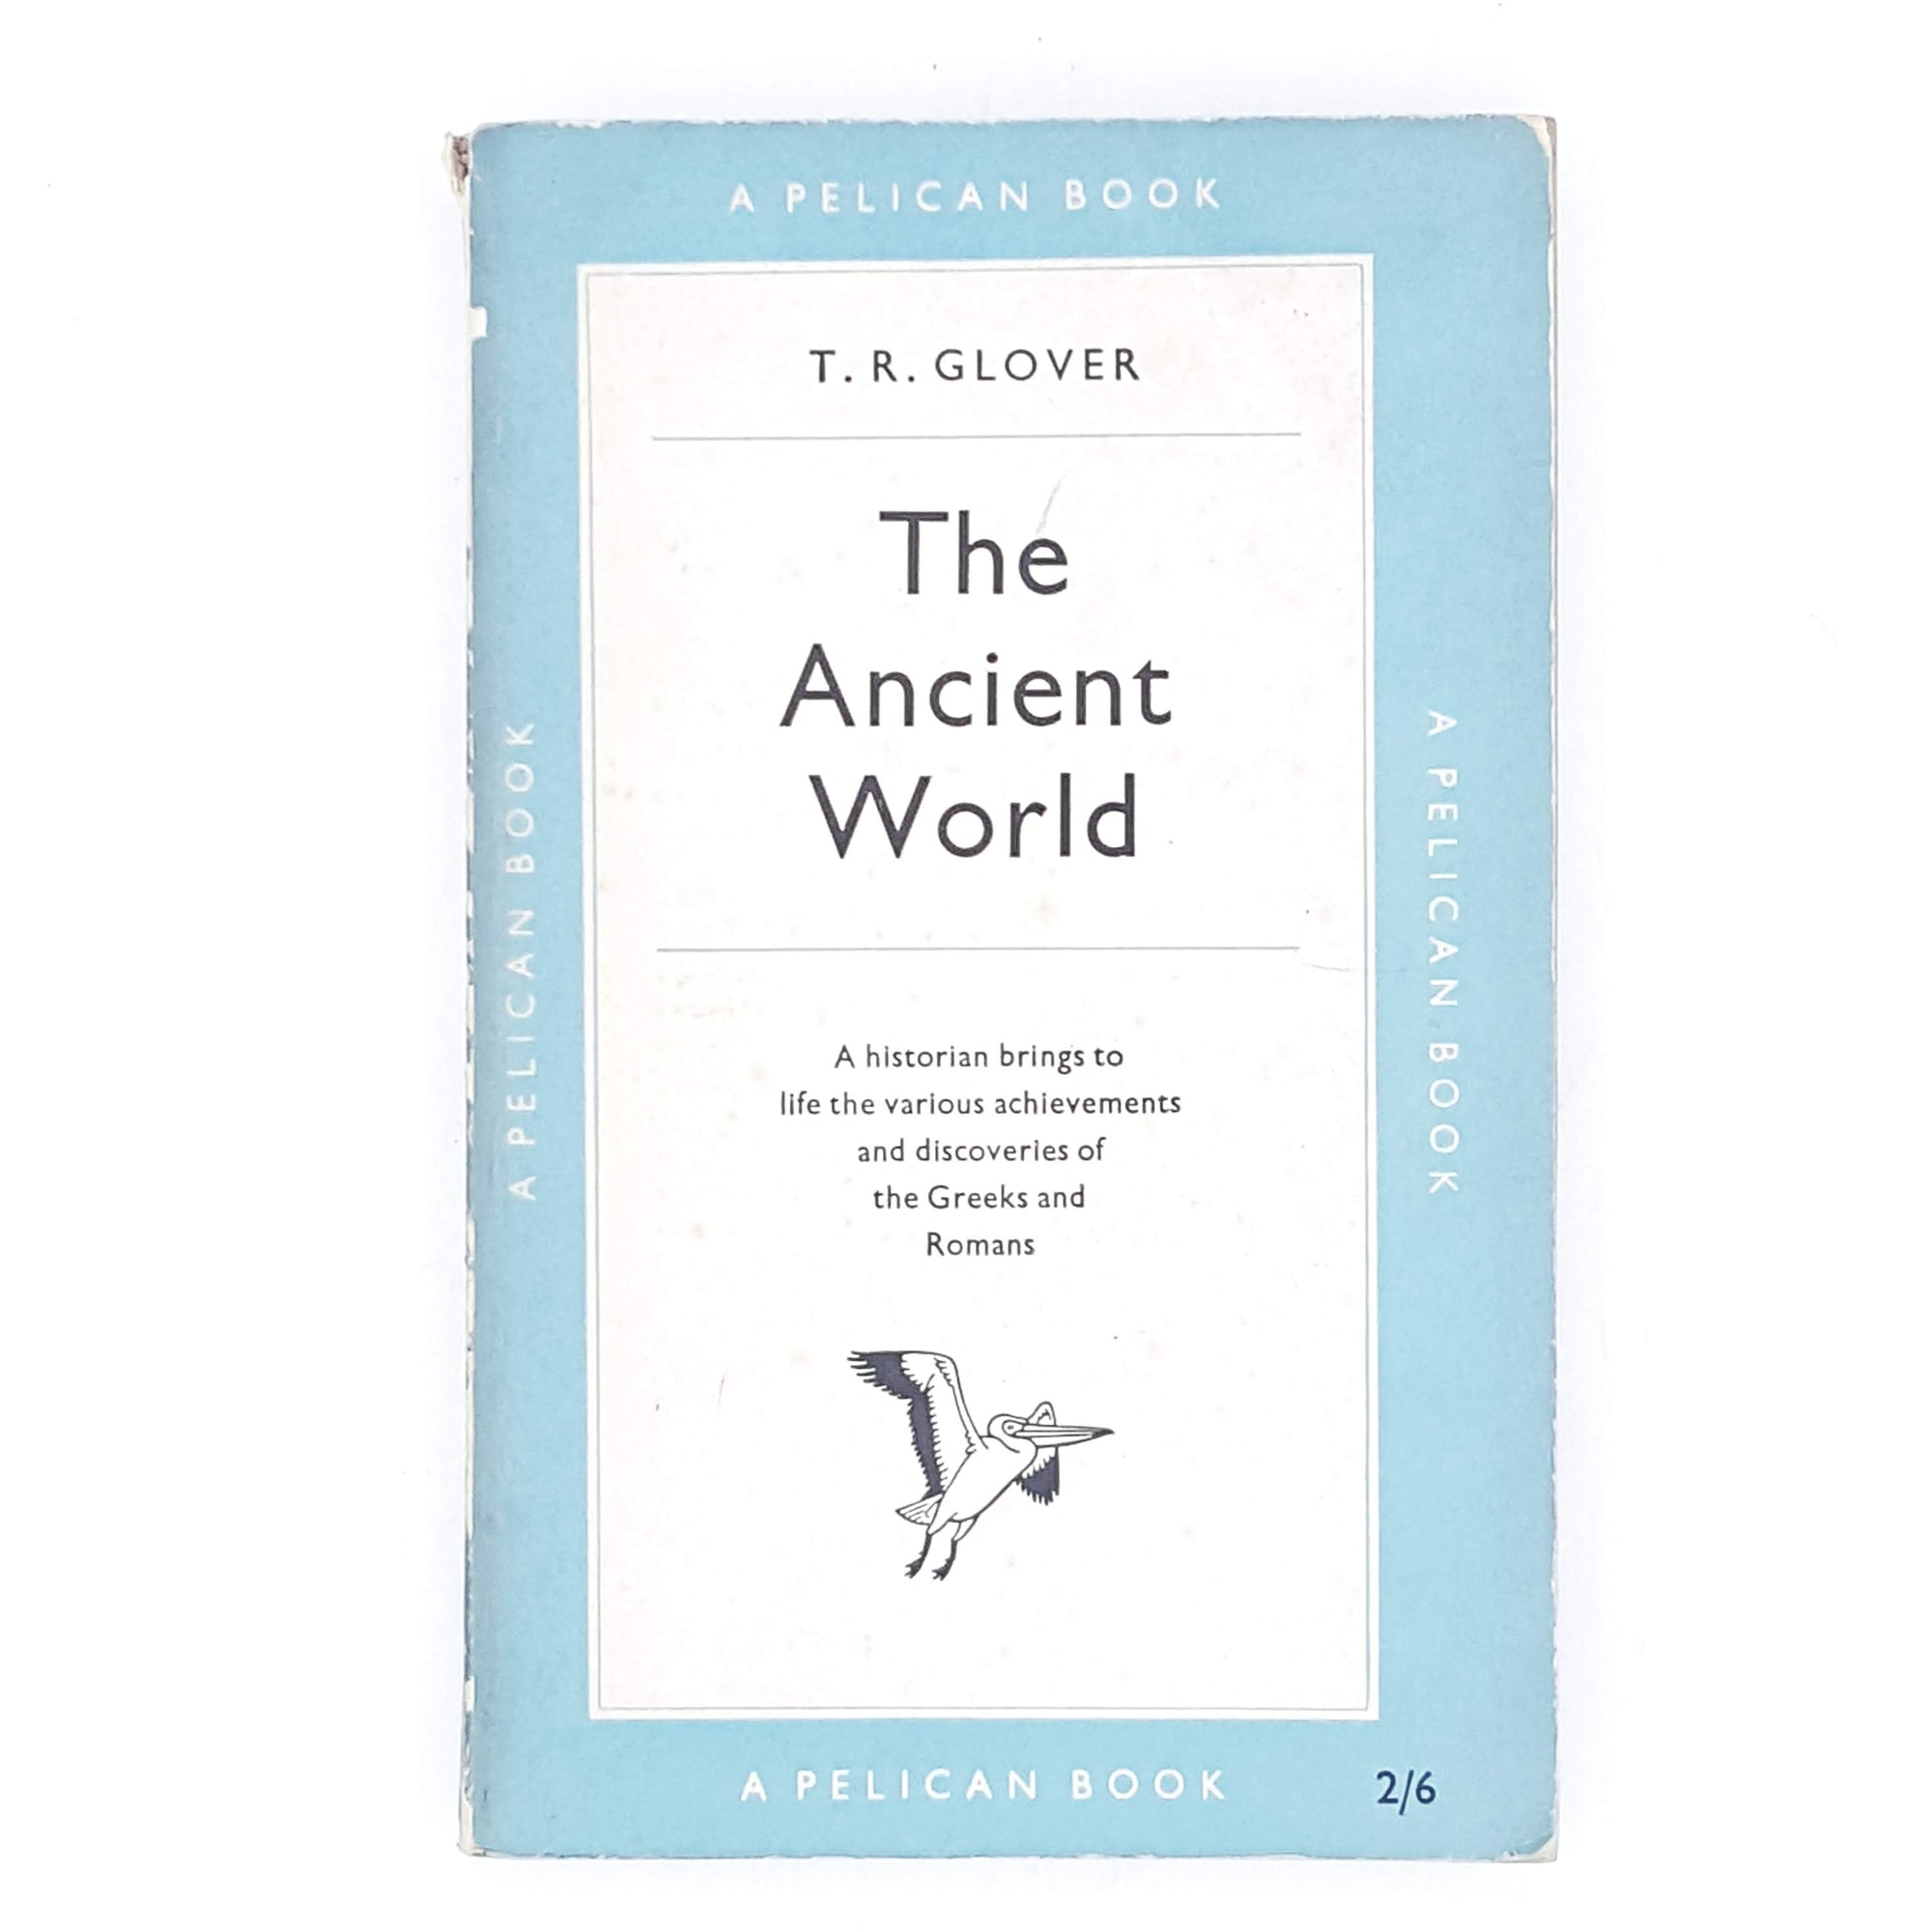 The Ancient World by T. R. Glover 1953